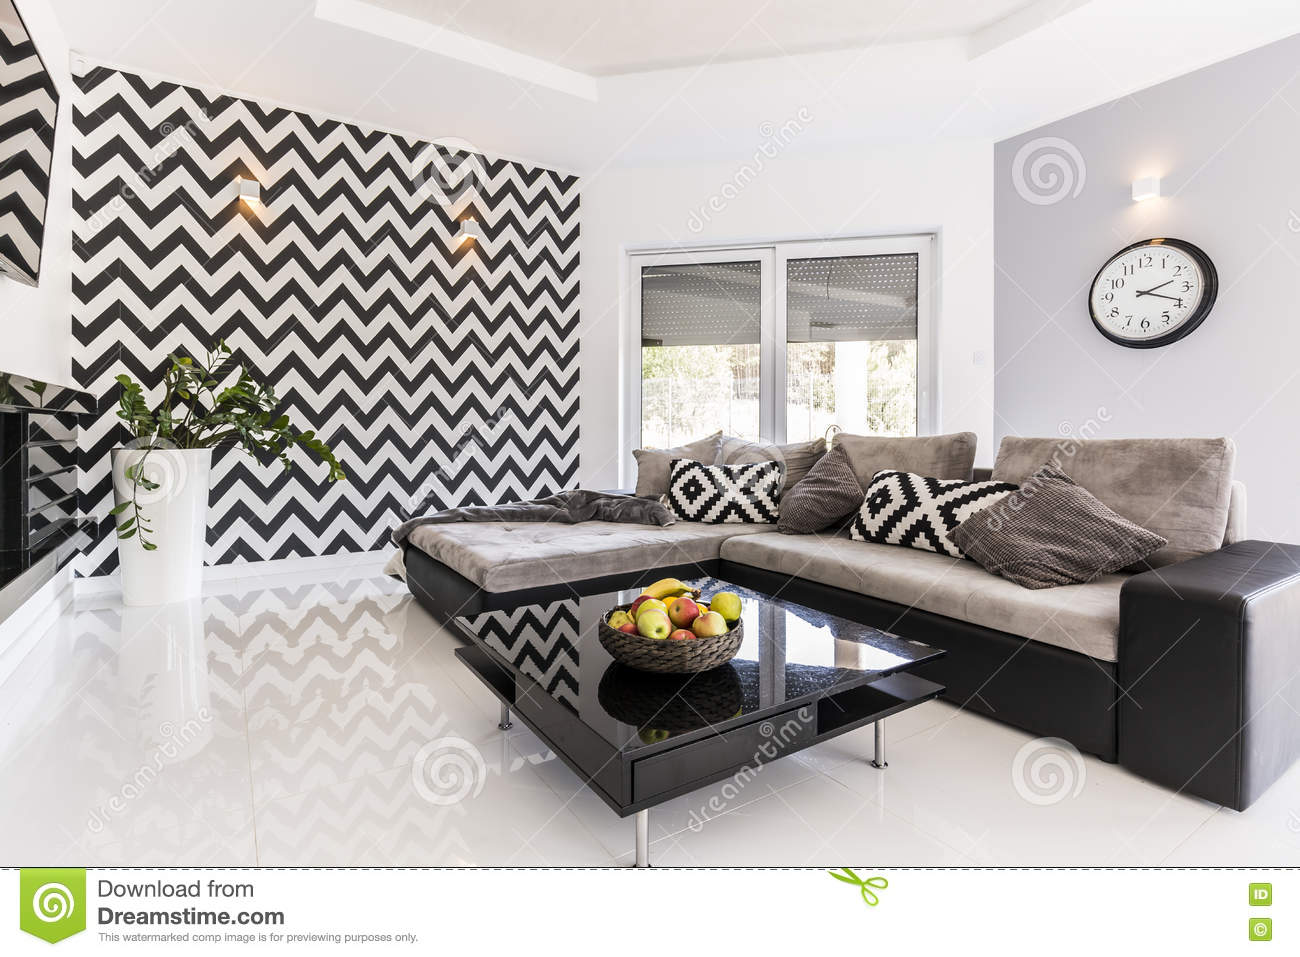 black white living room idea new style spacious large sofa small table pattern wallpaper 75149300